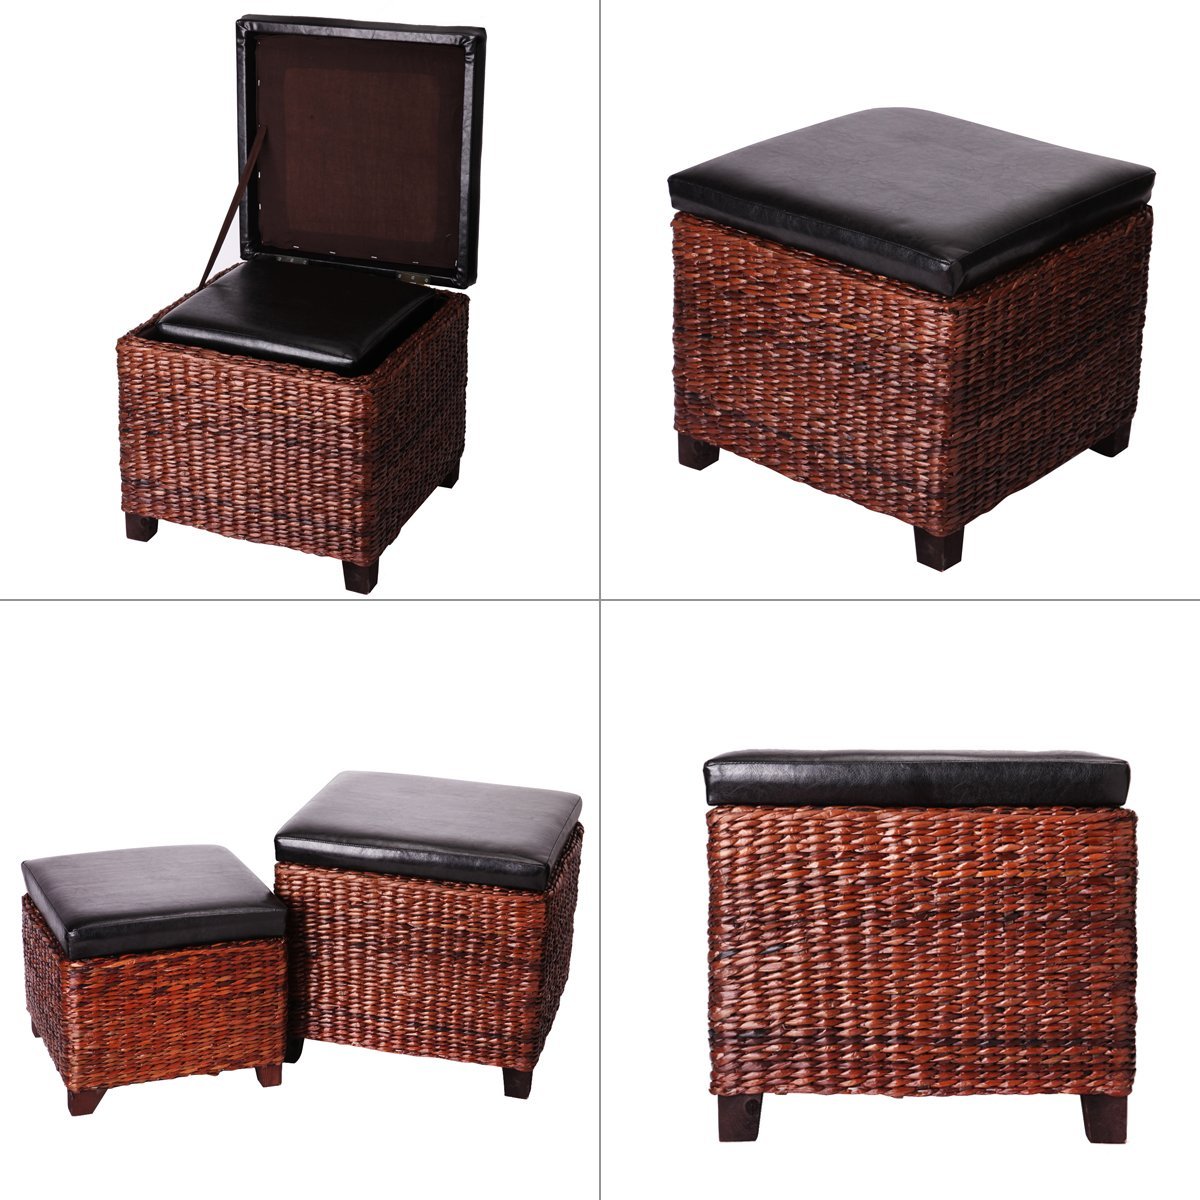 Eshow Ottoman Rattan Ottoman with Storage Hassocks and Ottomans Foot Rest Pouf Ottoman Foot Stools Cube Decoration Furniture Leather Ottoman Seating Storage Bench Ottoman with Tray Small 2-Piece,Brown by Eshow